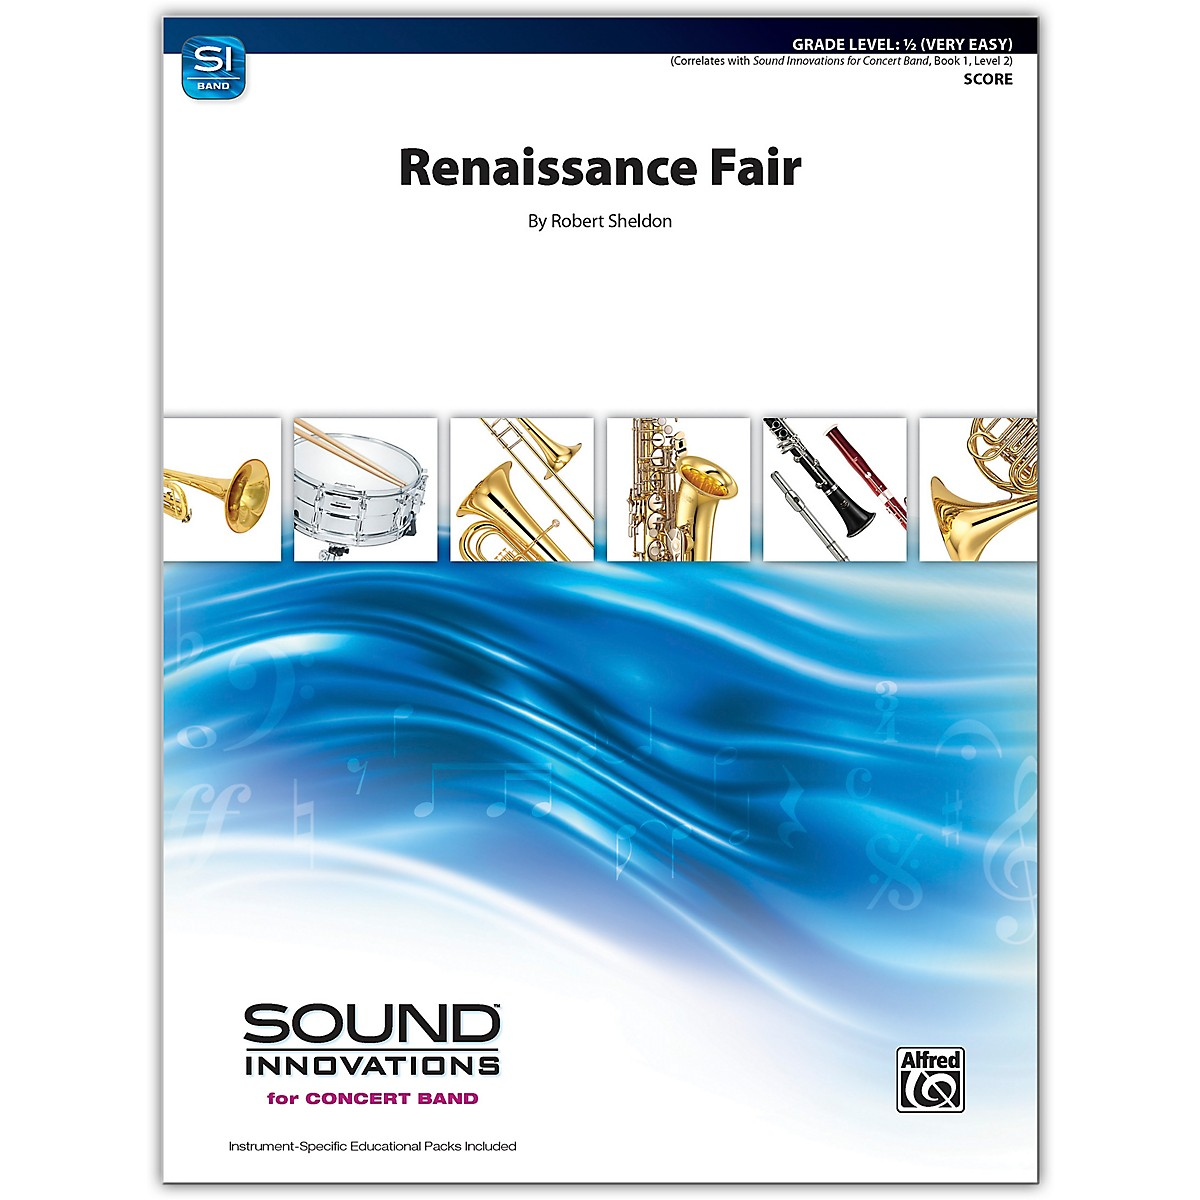 Alfred Renaissance Fair Conductor Score 0.5 (Very Easy)